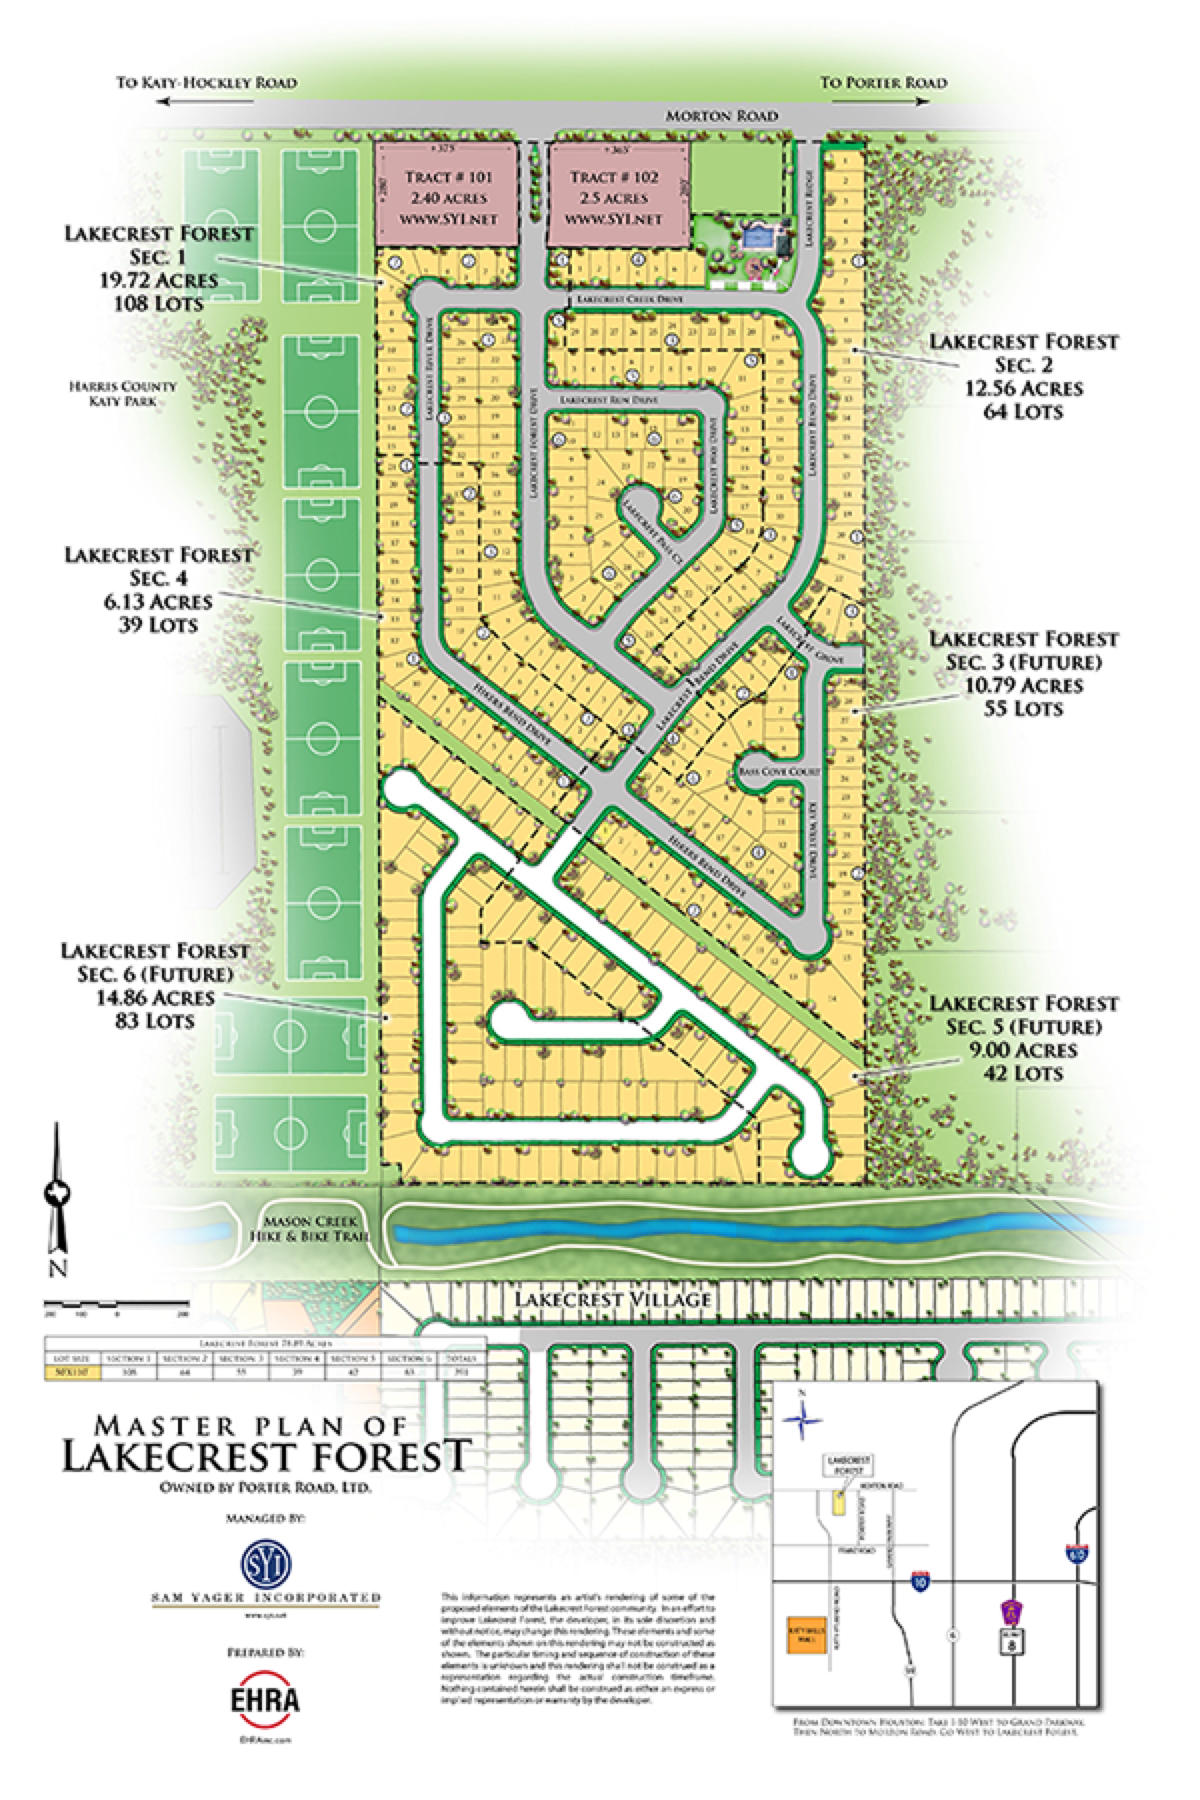 Lakecrest Forest Master Plan